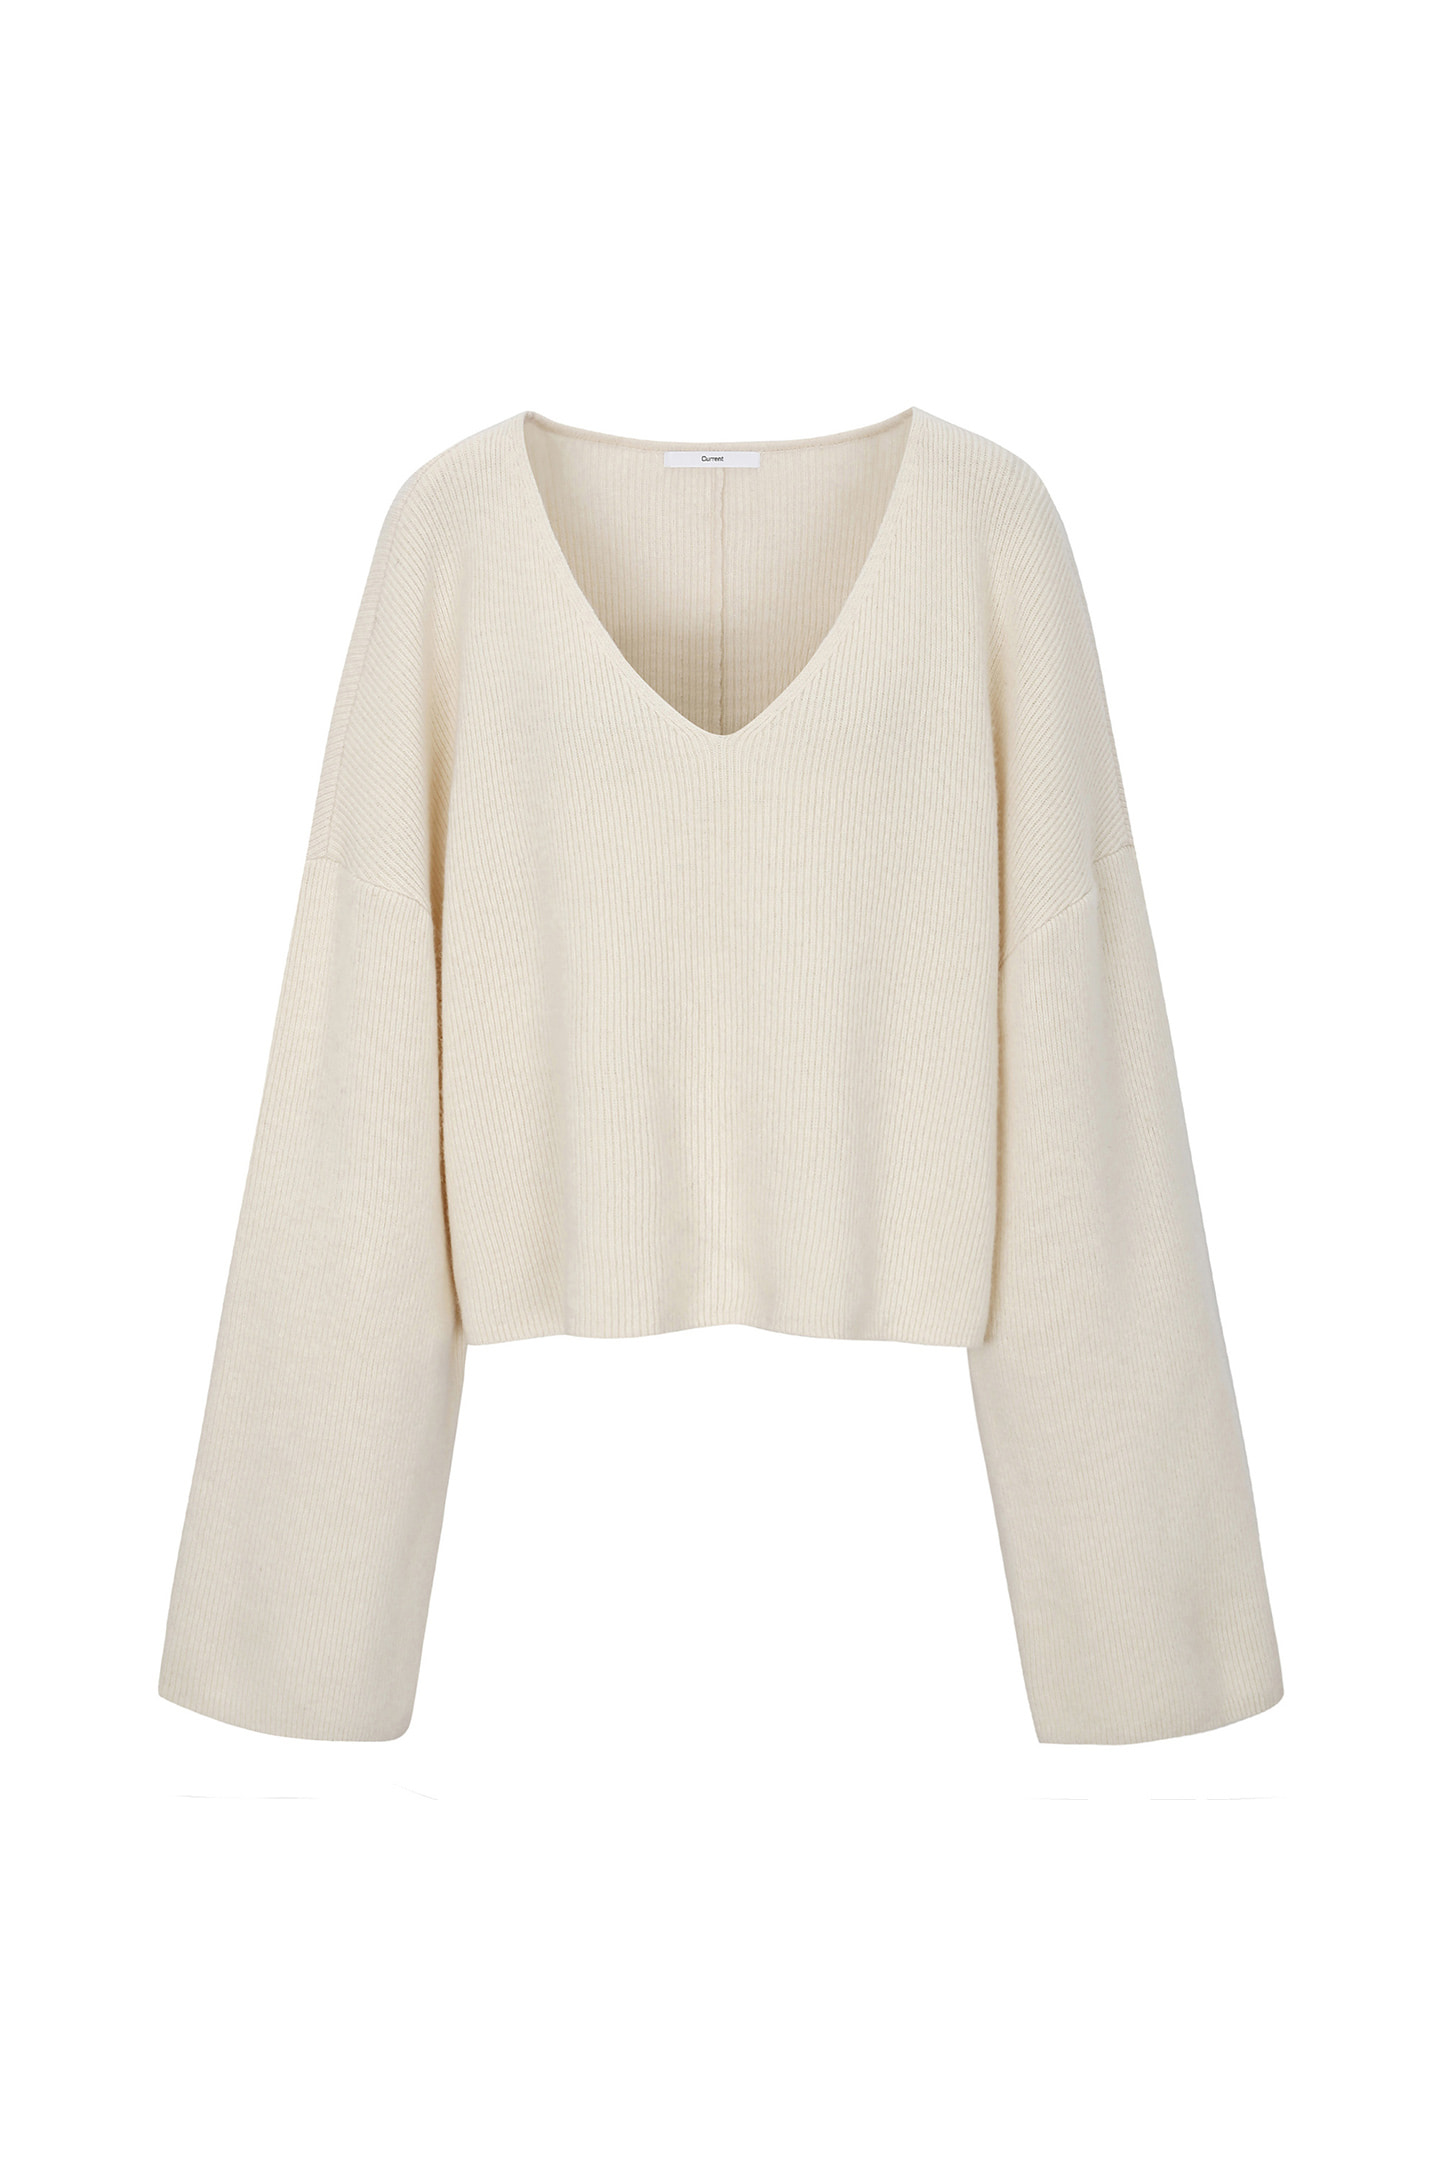 V-Neck Knit Crewneck [Ivory] -60%